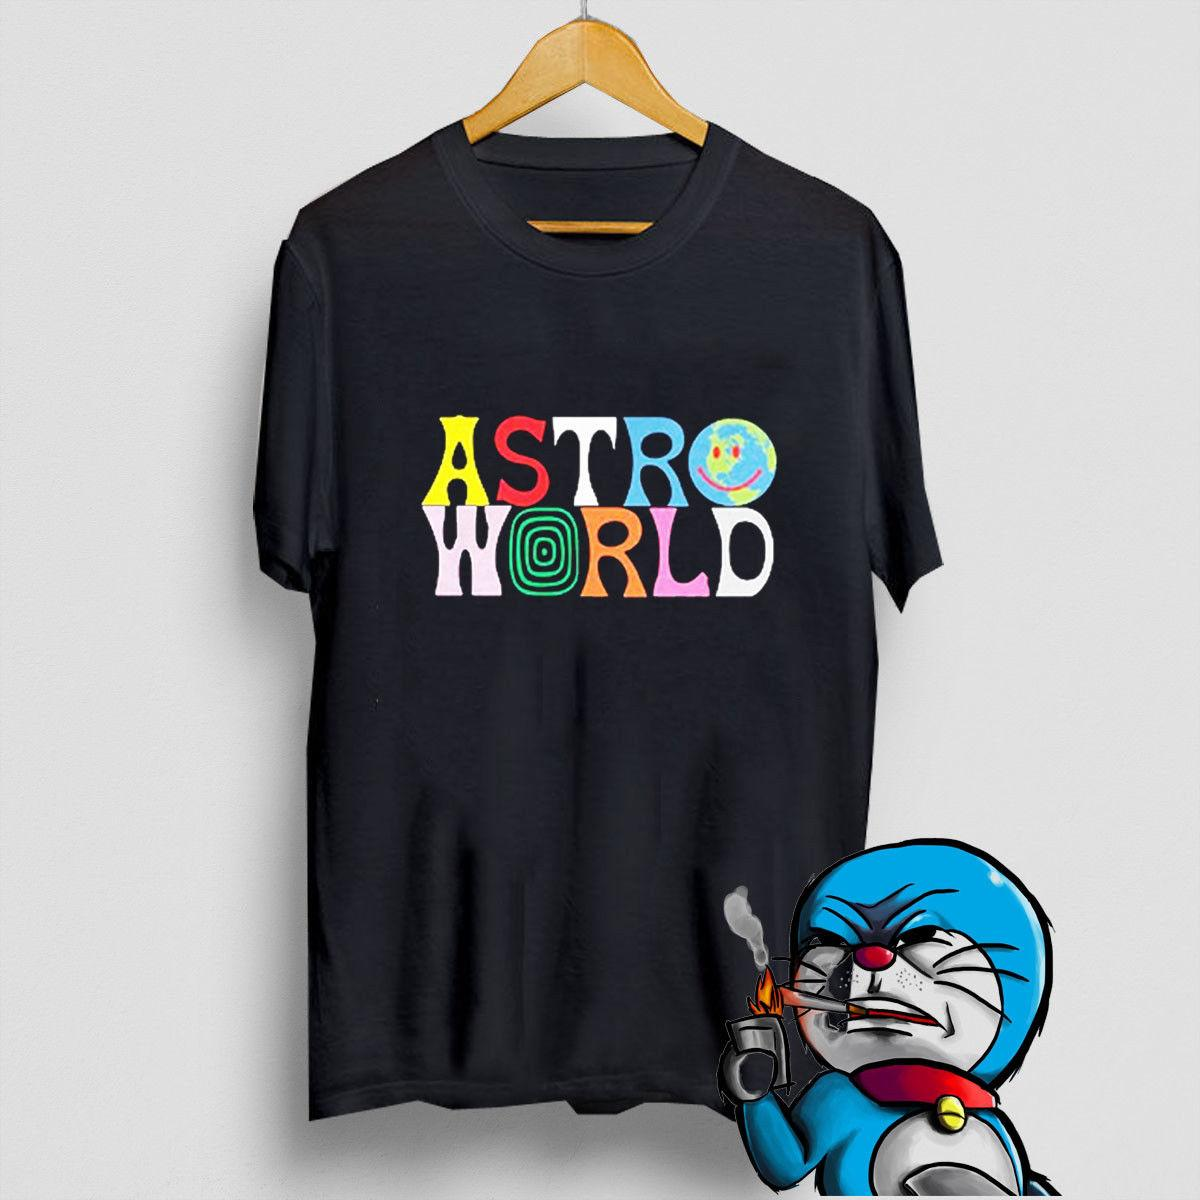 81dcdd83f53a Travis Scott Astroworld Wish You Were Here Front And Back Printed Unisex  Heavy Cool Casual Pride T Shirt Men Womens Shirt T Shart From  Designtshirts201802, ...